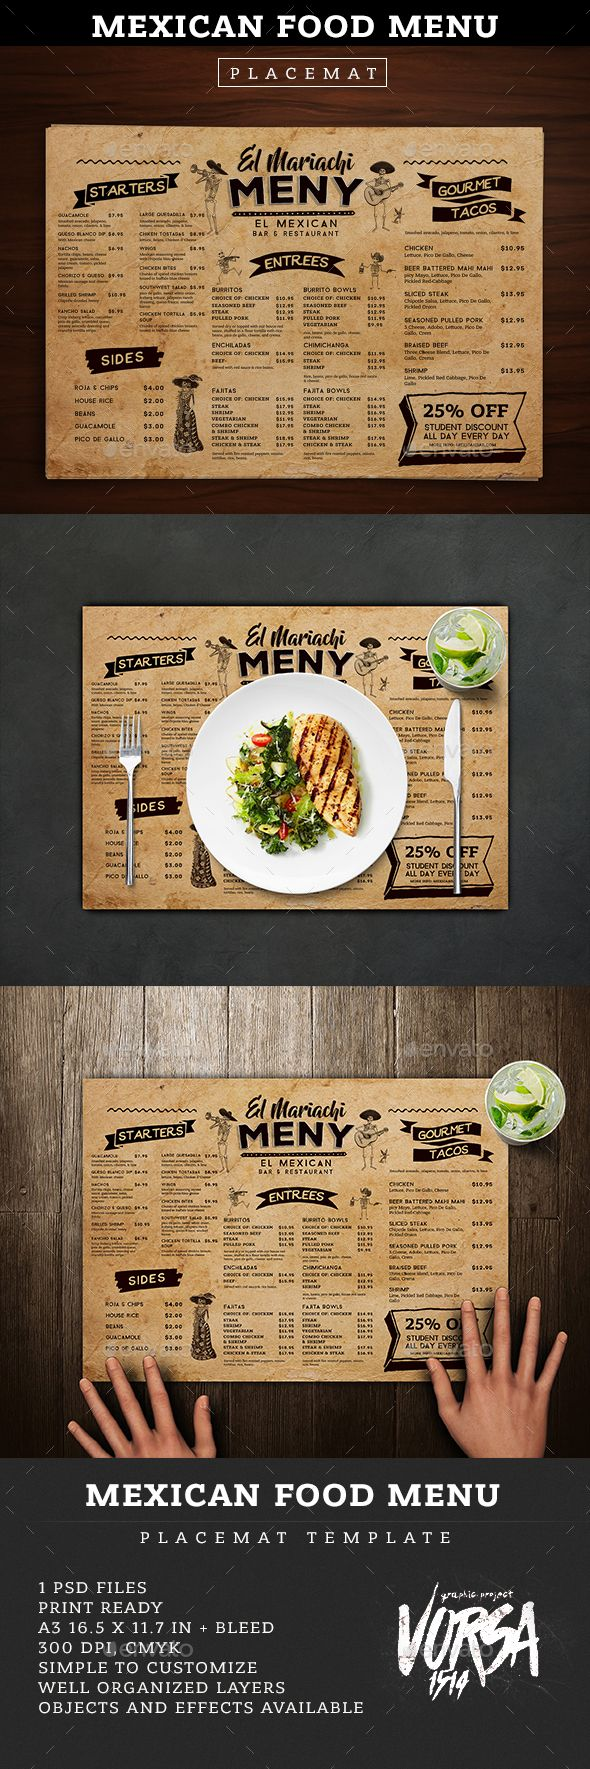 Mexican Food Menu Placemat template — Photoshop PSD #mexican #vintage • Download ➝ https://graphicriver.net/item/mexican-food-menu-placemat-template/18878470?ref=pxcr